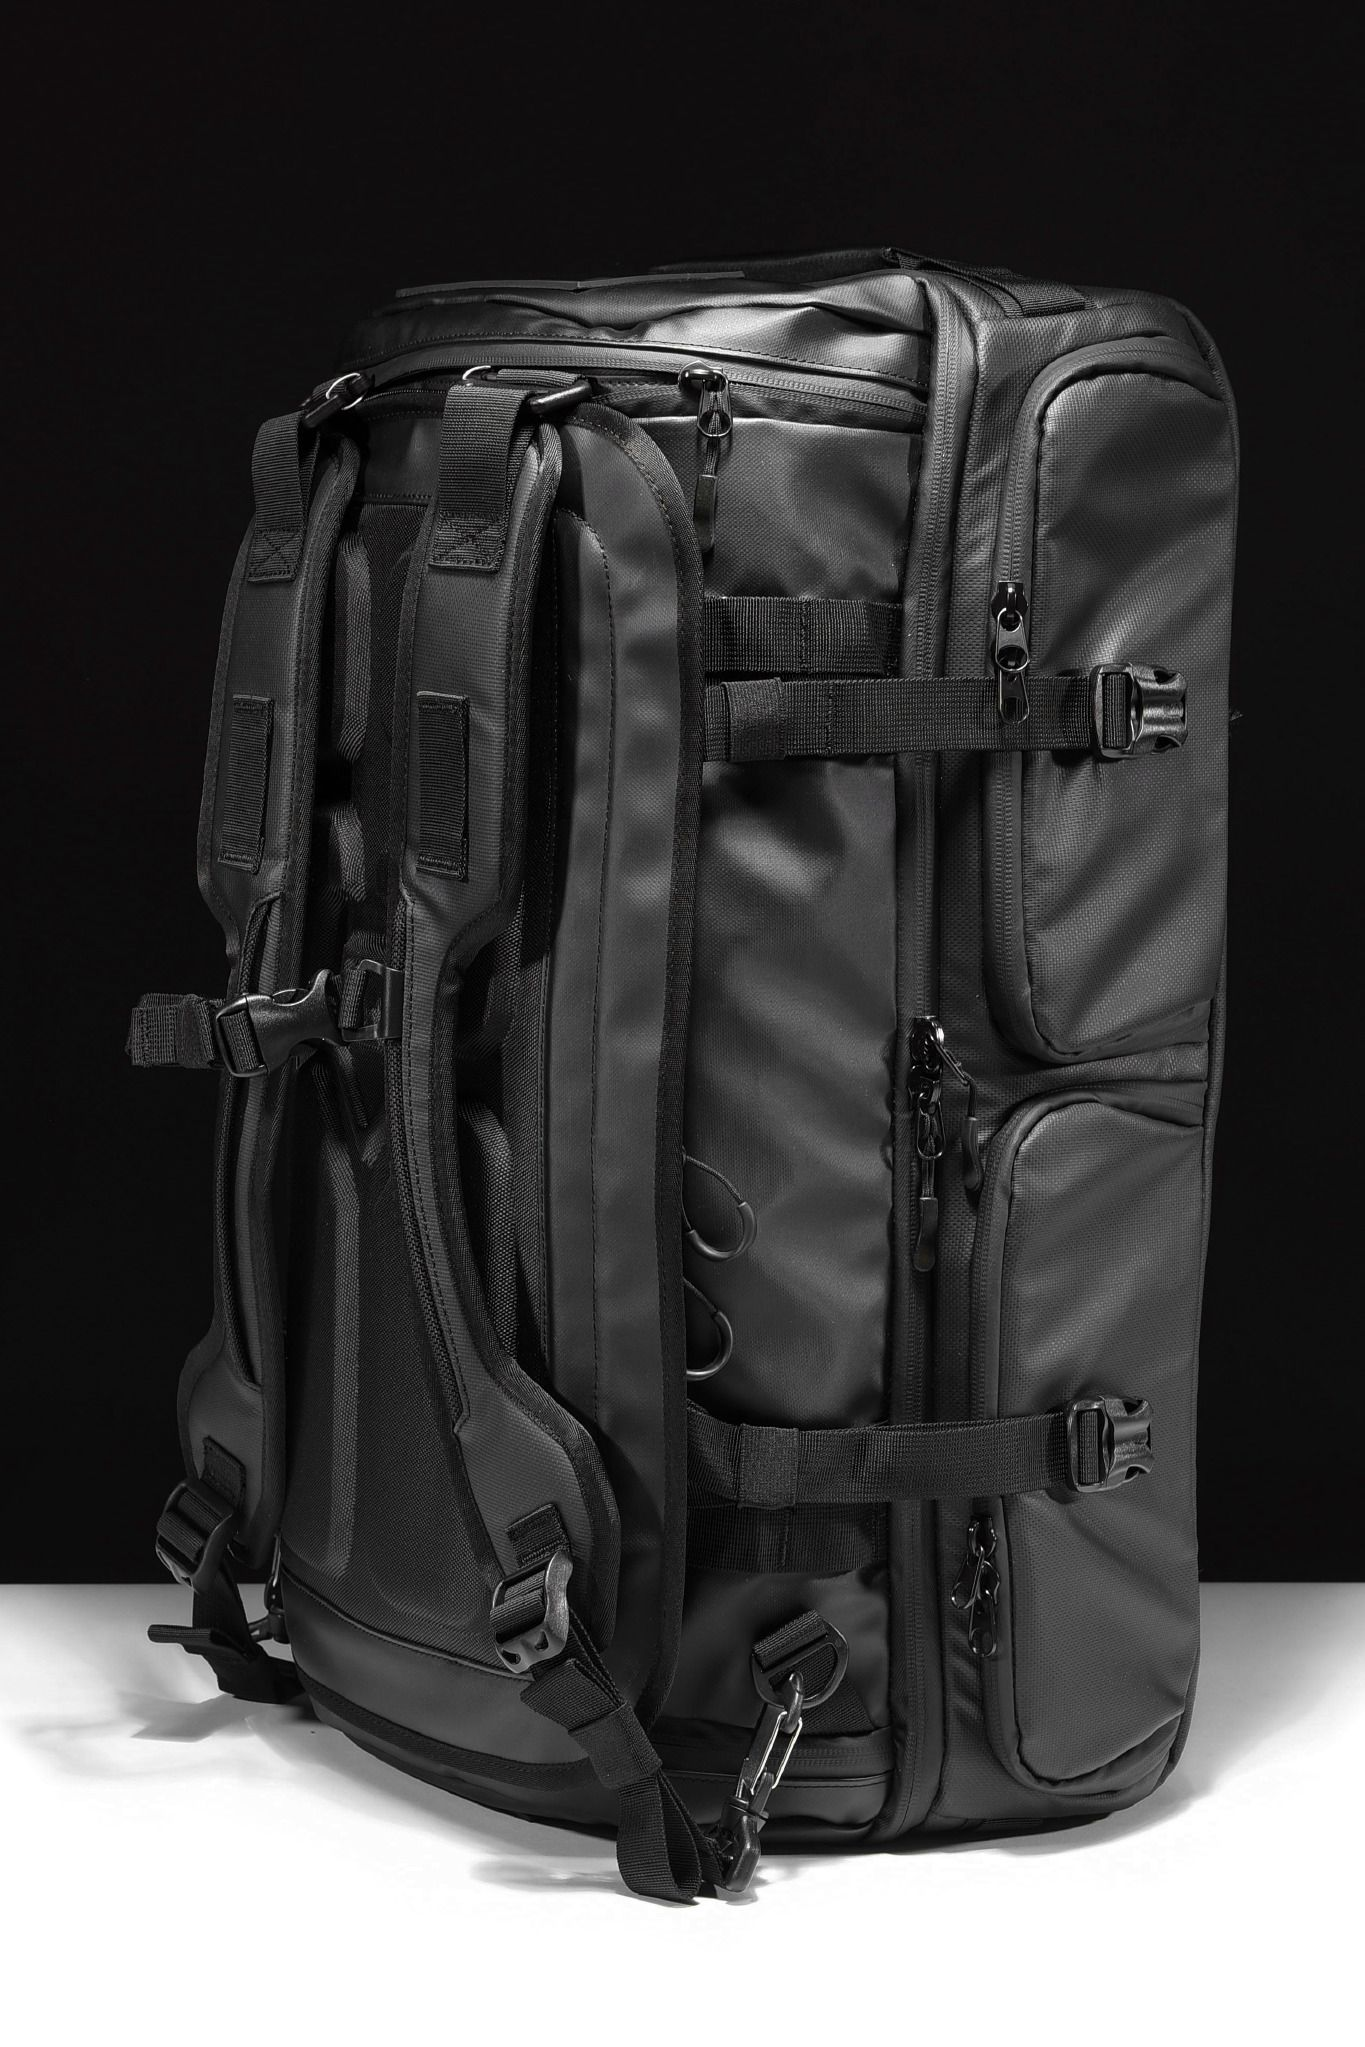 ca308df3a147 The WANDRD HEXAD Access Duffel - For the photographer with more gear or for the  travel who wants more organization.